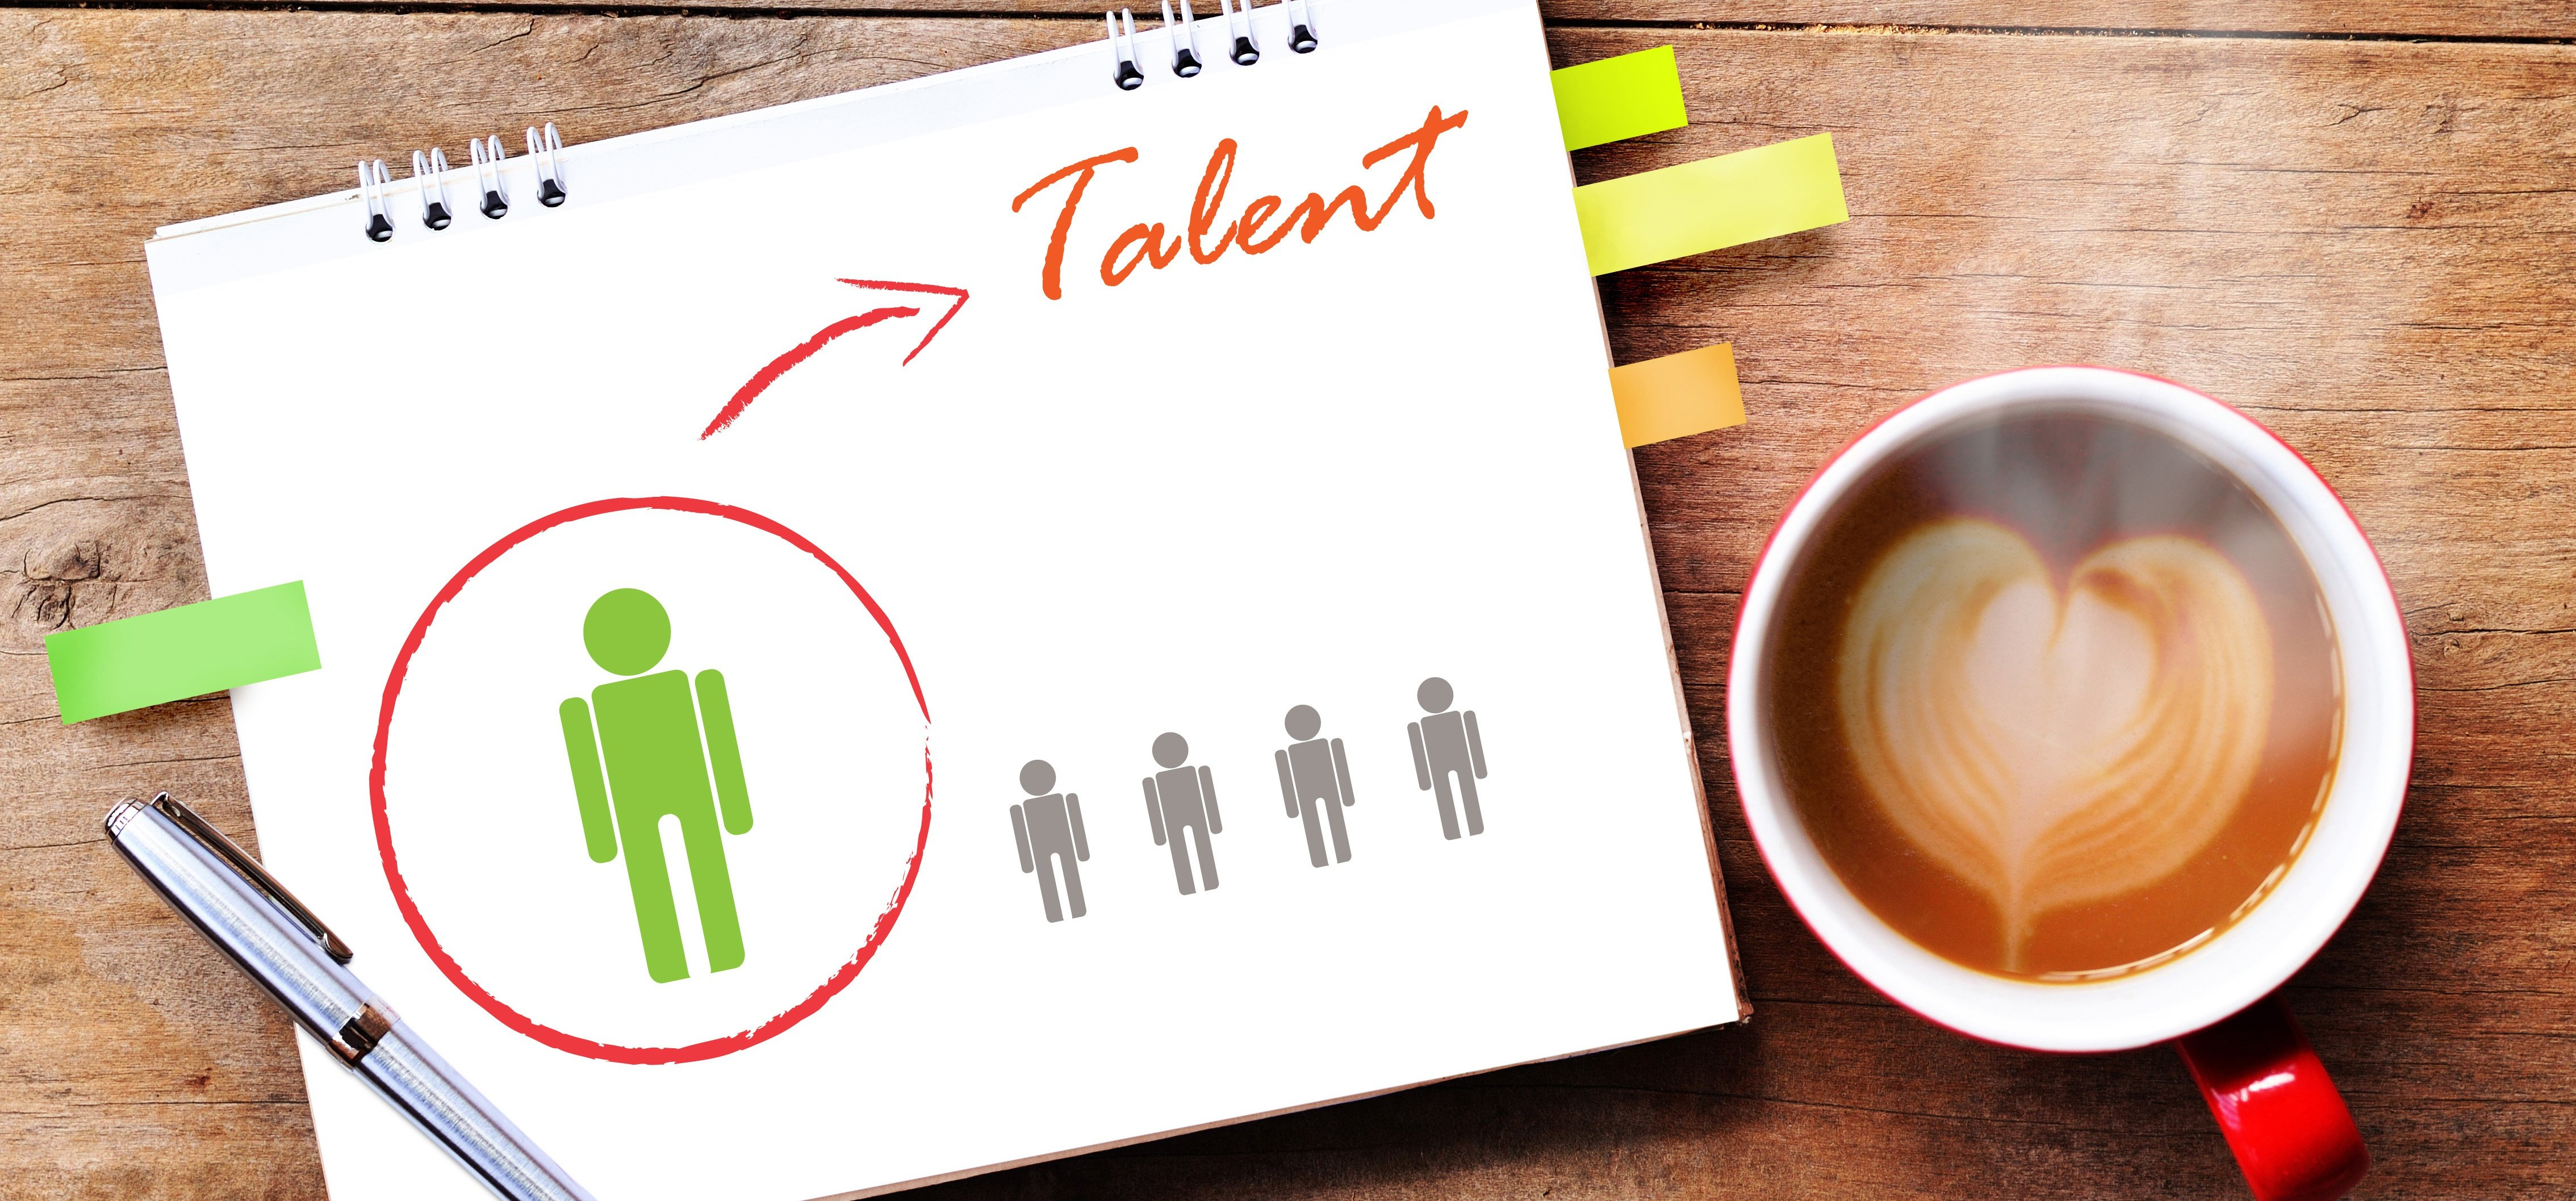 3 Bona Fide Hacks for Hiring the Best Talent